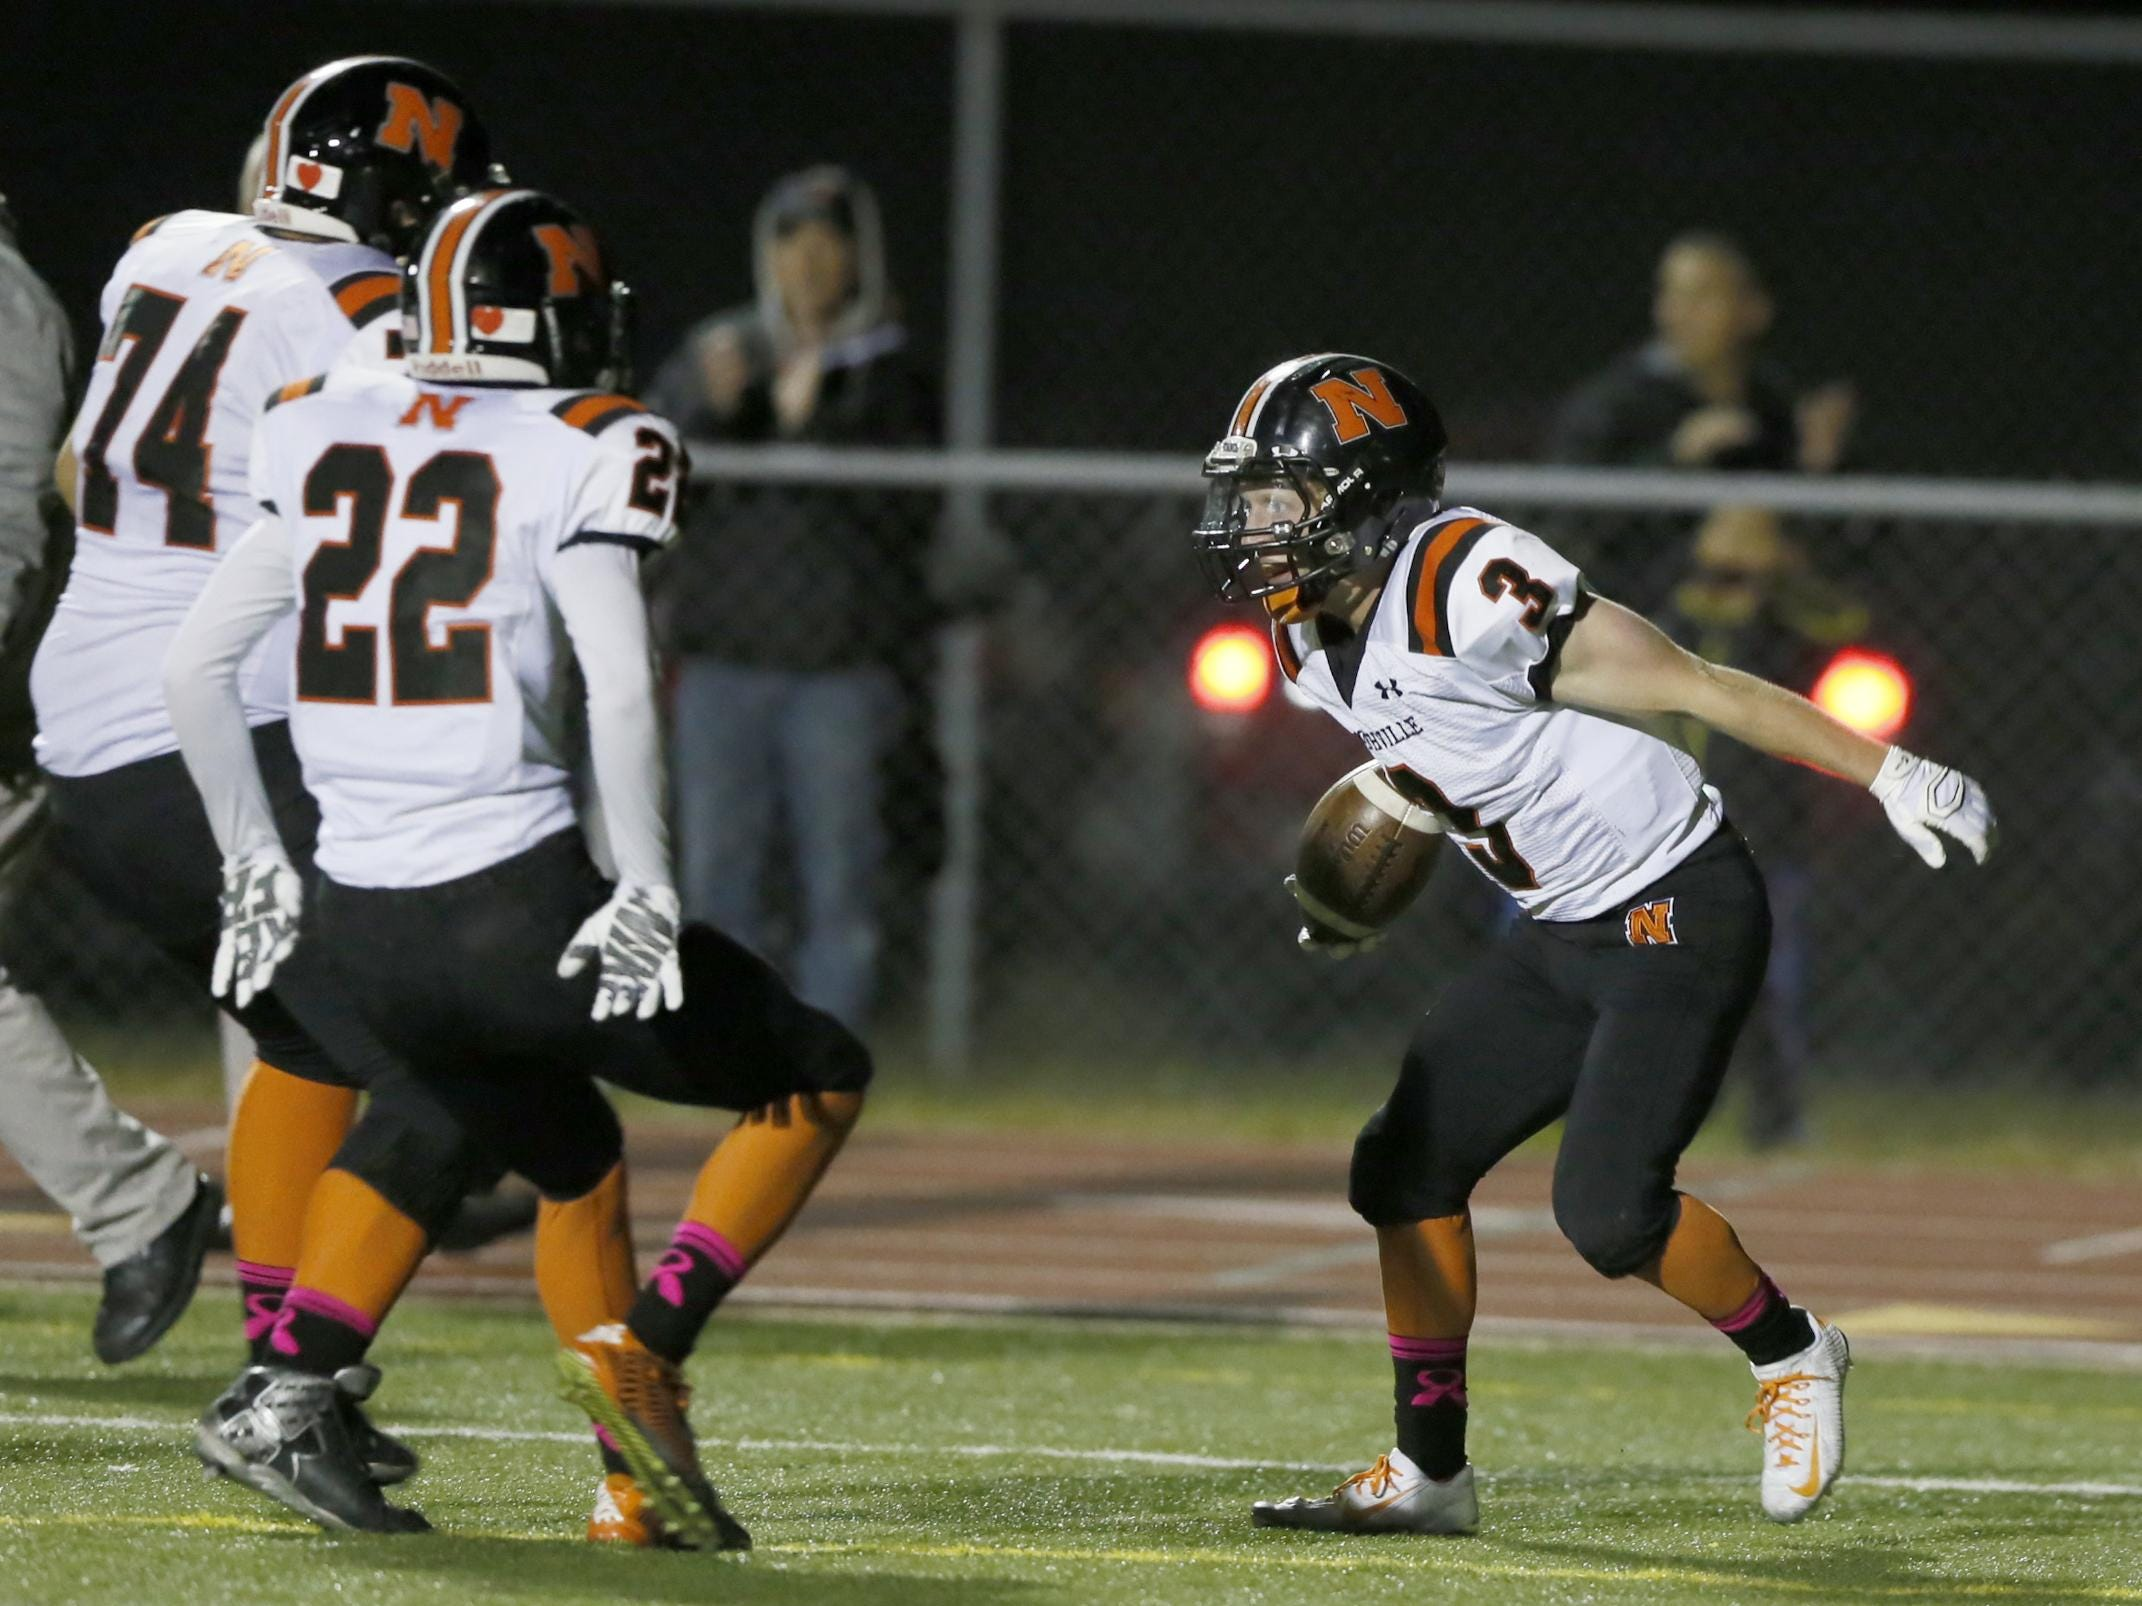 Northville's Zachary Prystash, right, gets ready to jump into the arms of his teammates after scoring to give the Mustangs a 17-14 lead.